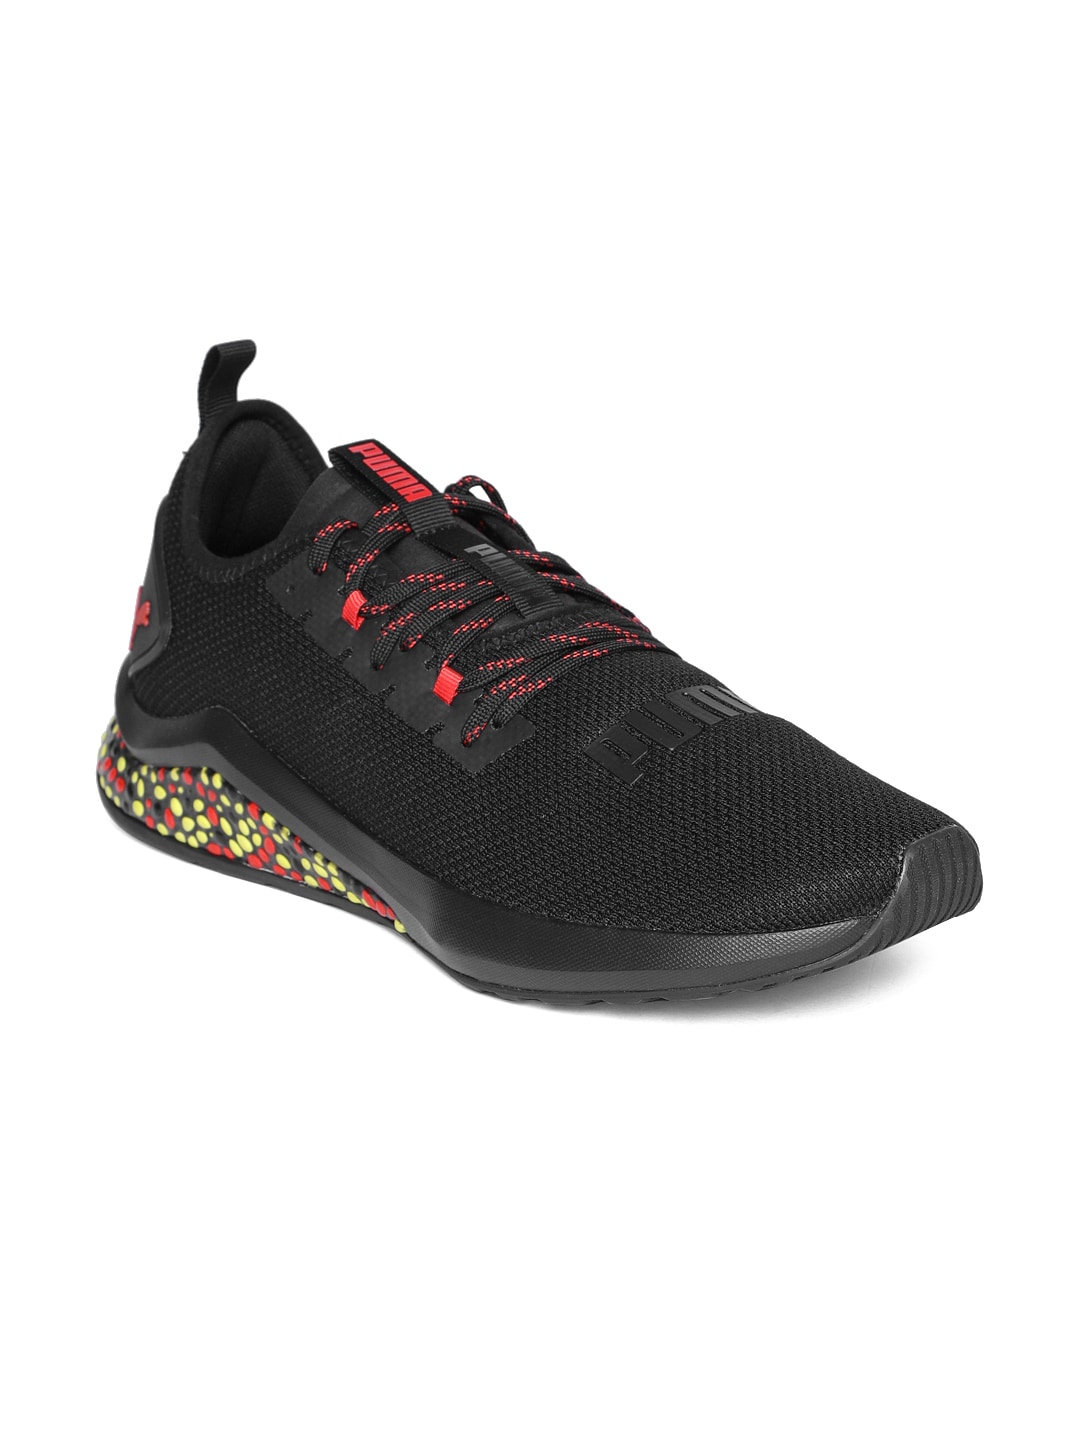 f0e49ca157c419 Puma Shoes - Buy Puma Shoes for Men   Women Online in India